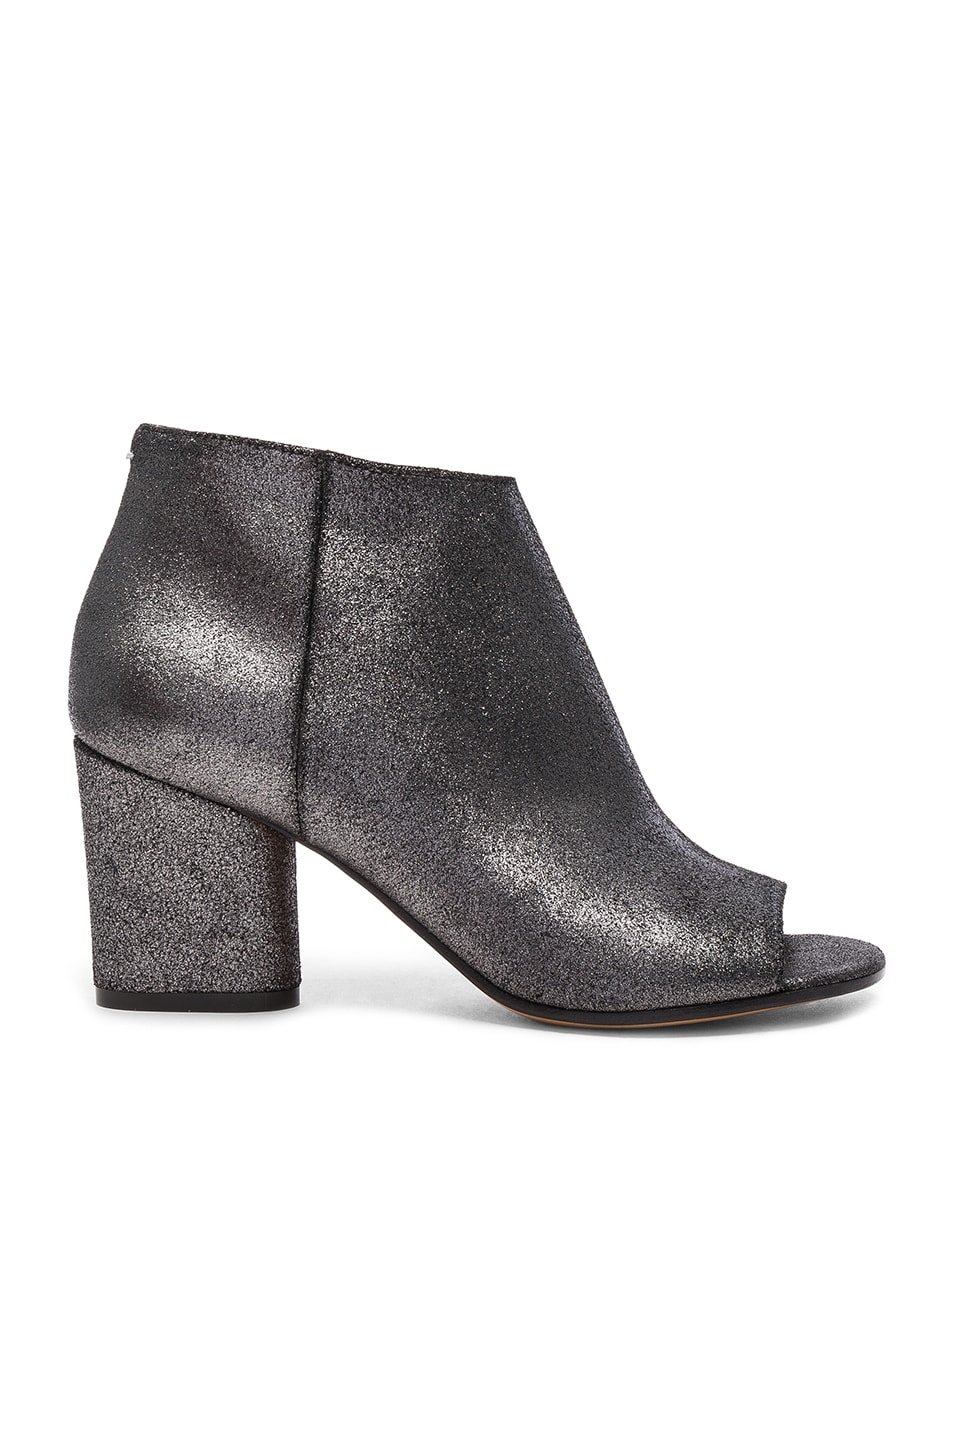 Image 1 of Maison Margiela Open Toe Booties in Black Metallic